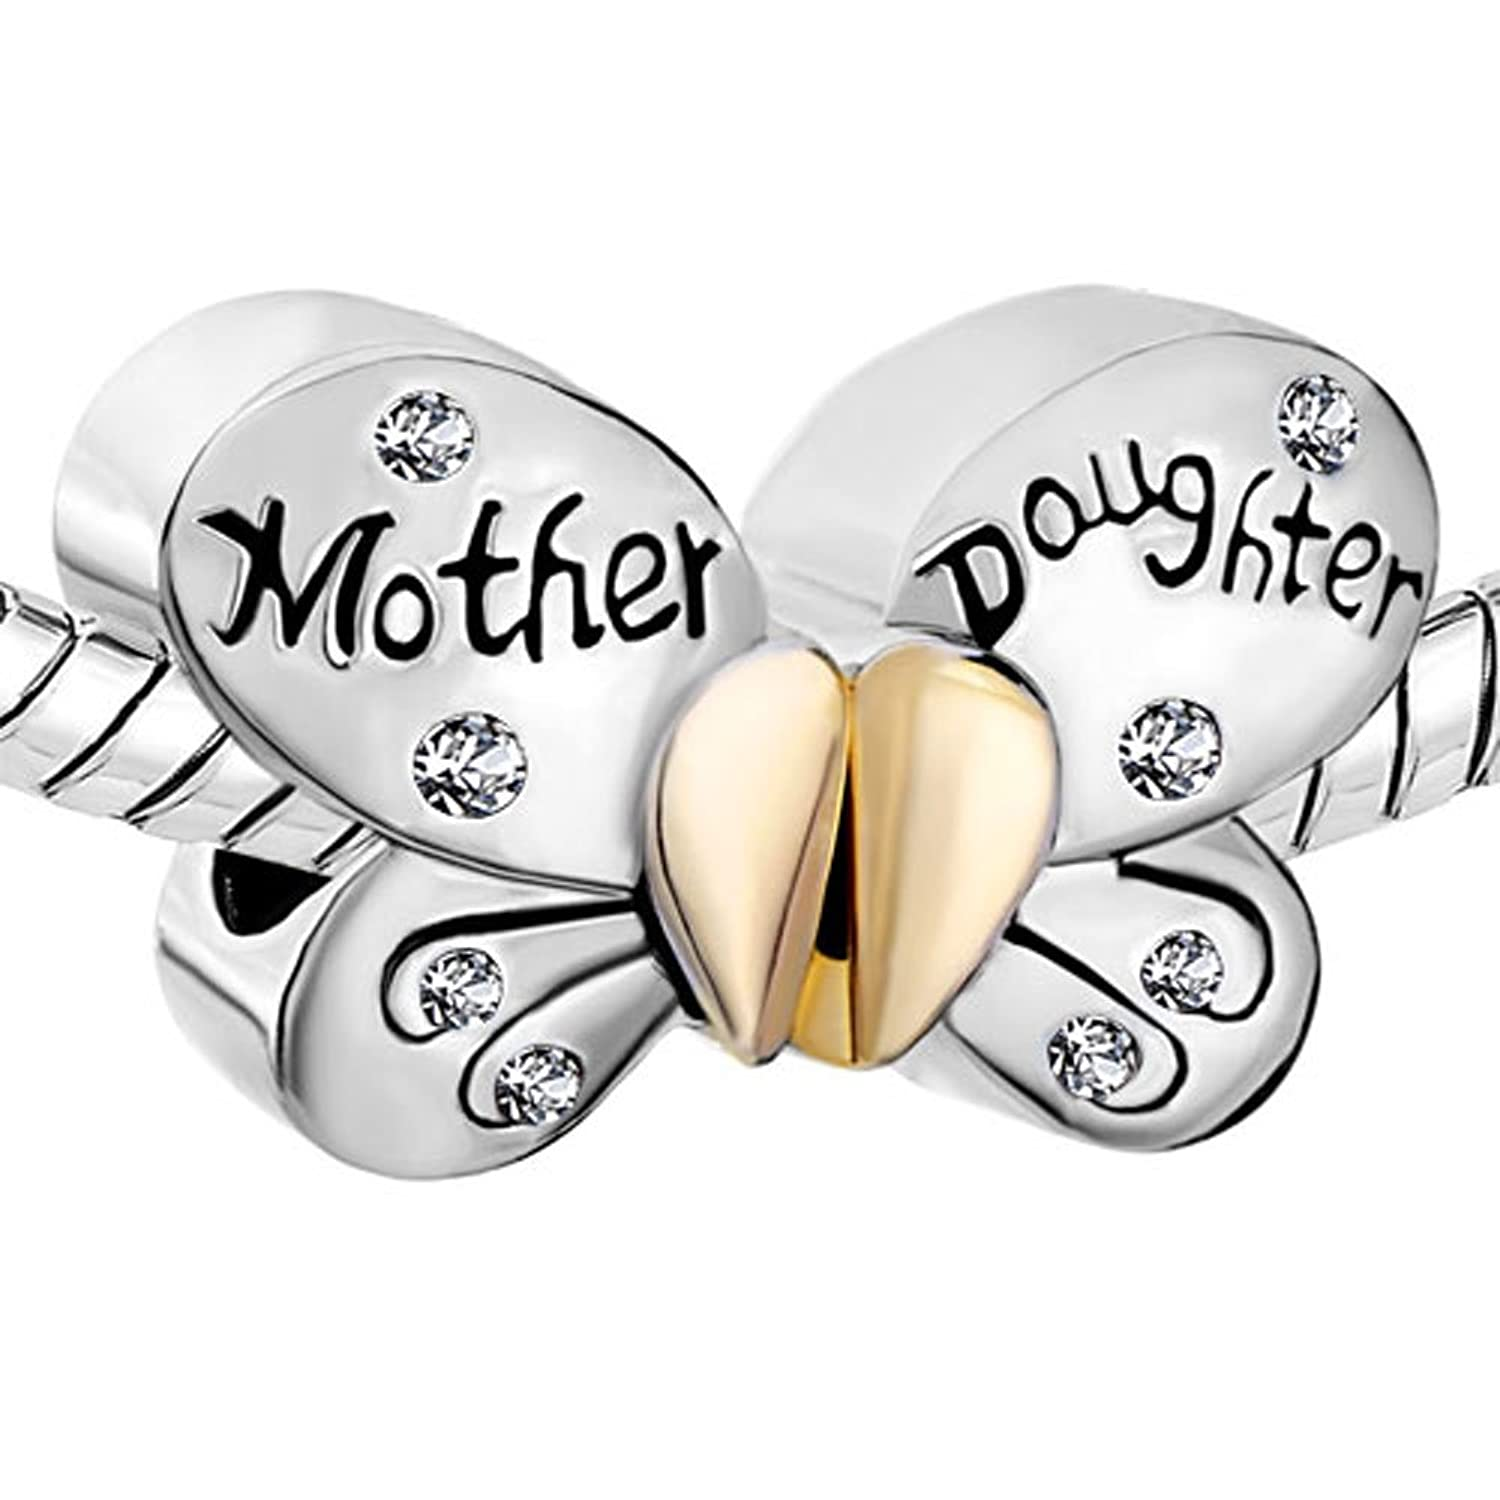 Mother Daughter Charm Butterfly Charm Clear Crystal Spacer Bead